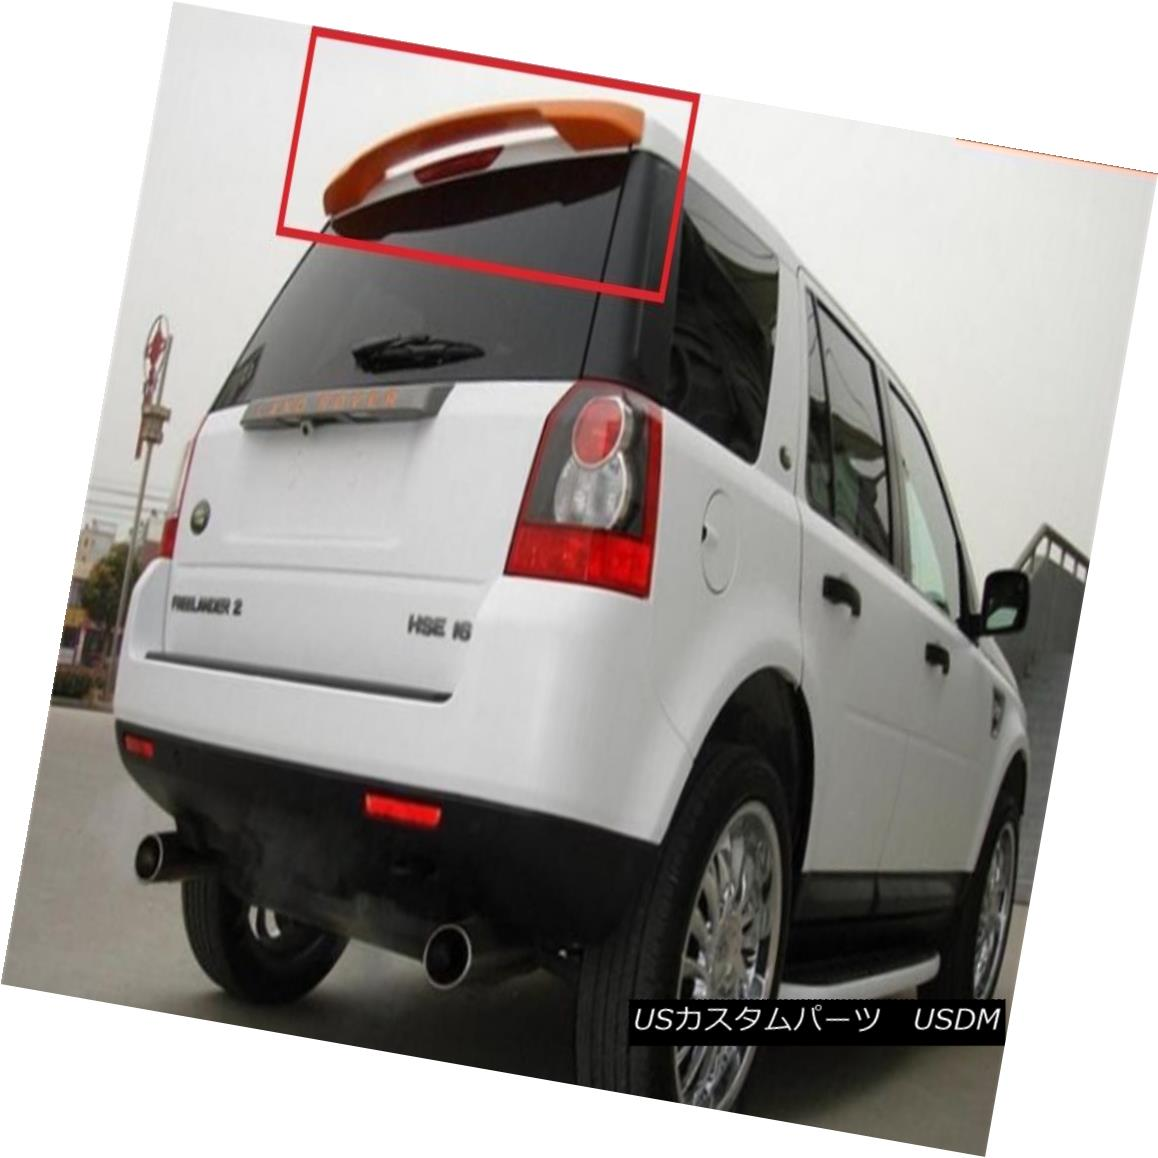 エアロパーツ LAND ROVER FREELANDER 2 MK2 REAR ROOF SPOILER NEW FROM 2007 LAND ROVER FREELANDER 2 MK2リアルーフスポイラー2007年新製品